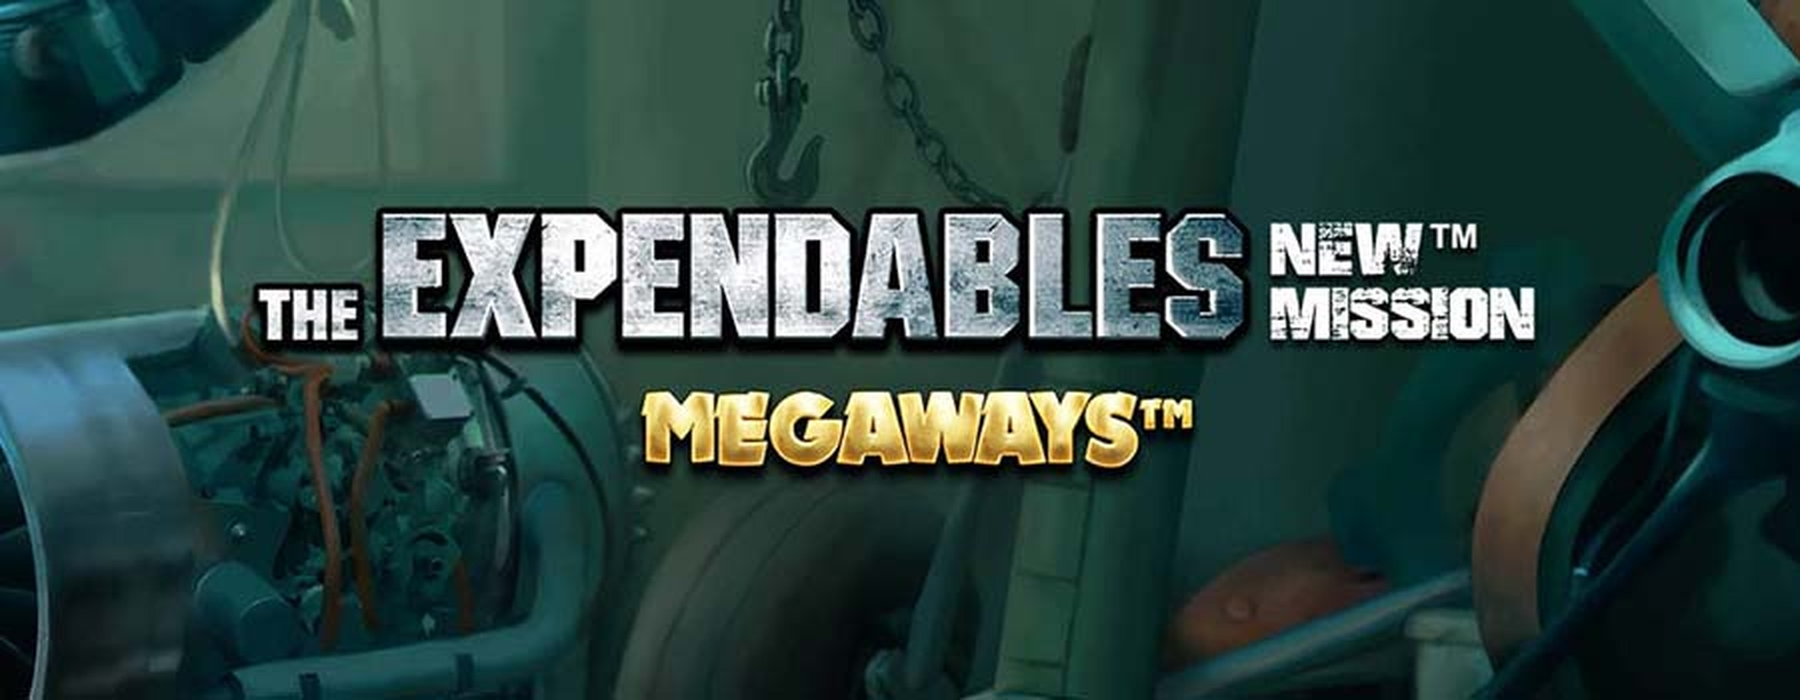 The Expendables New Mission Megaways Online Slot Demo Game by Stakelogic